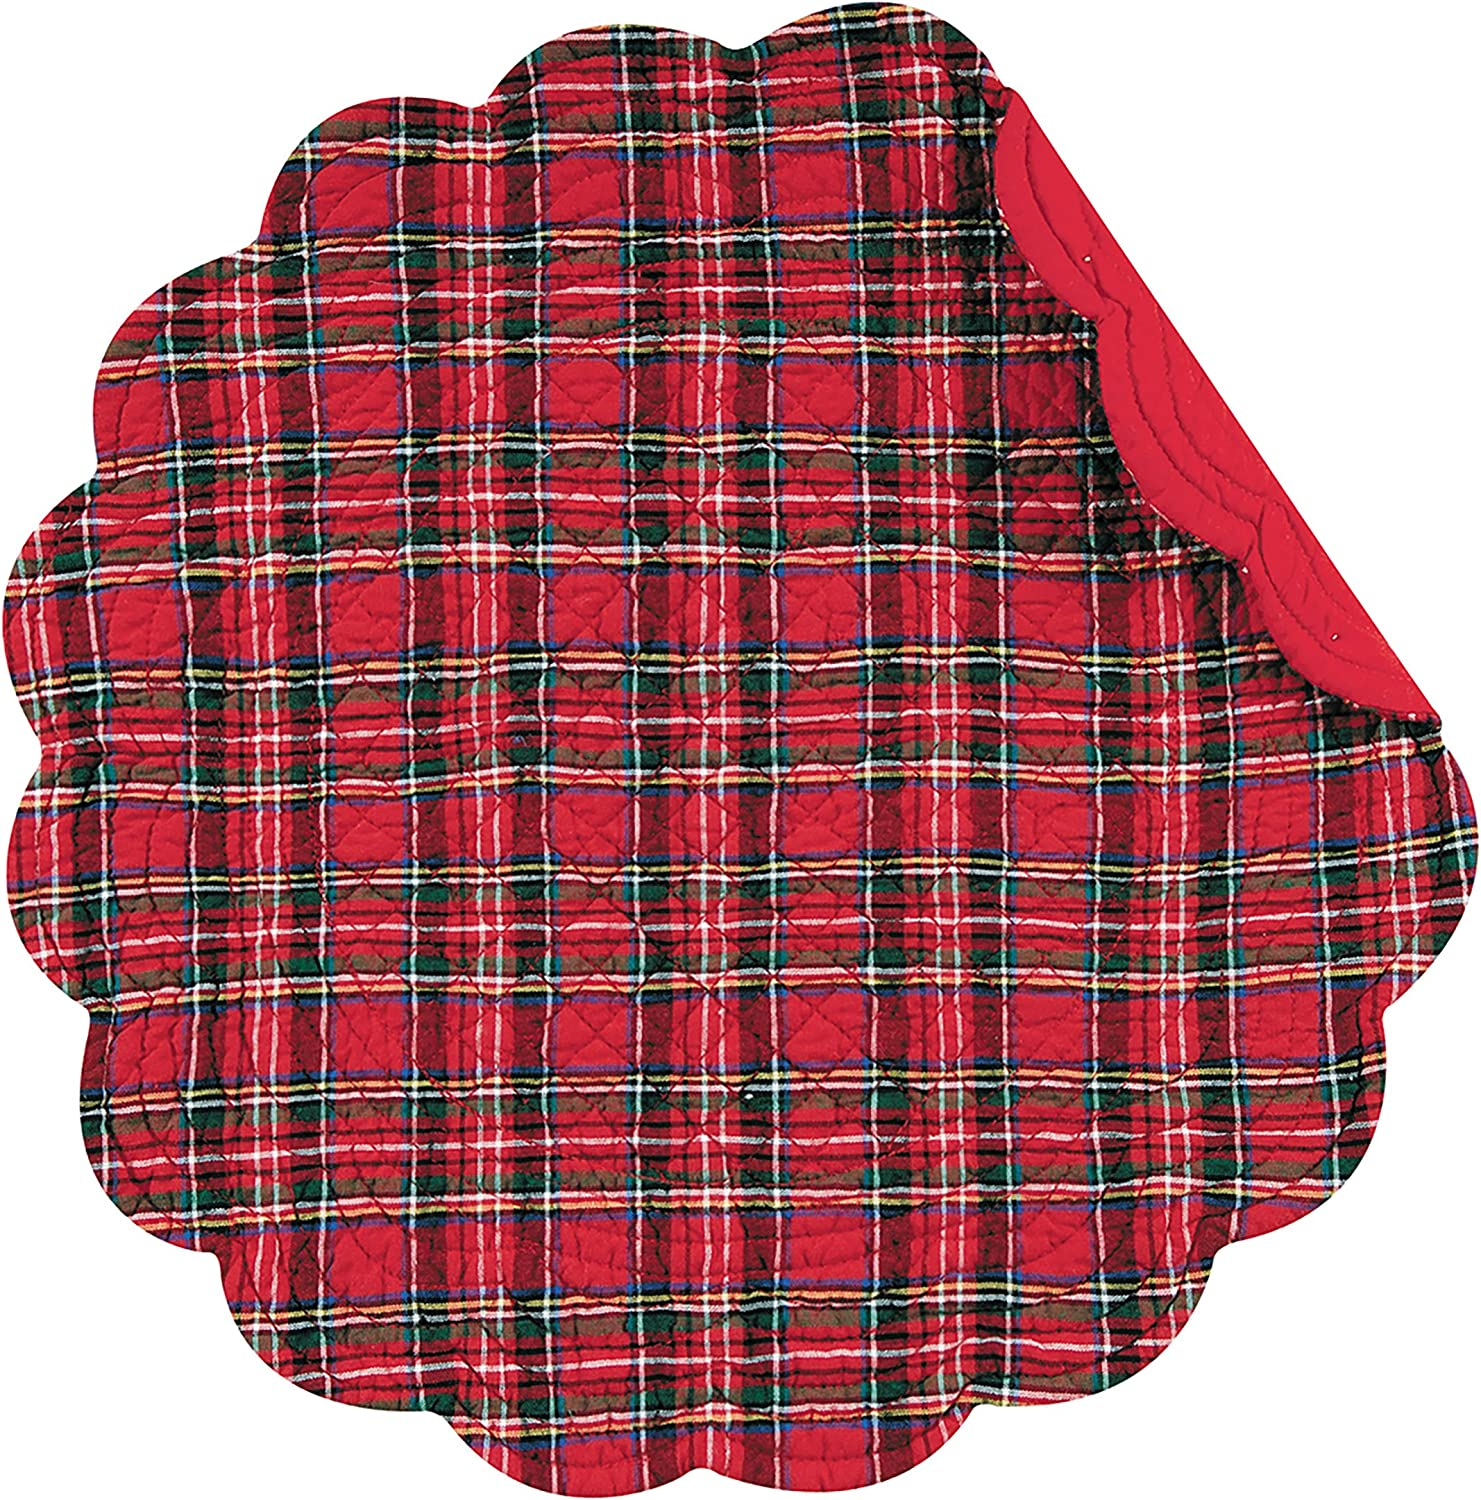 Amazon Com C F Home Red Plaid Round Cotton Quilted Cotton Reversible Machine Washable Placemat Set Of 4 Round Placemat Red Home Kitchen